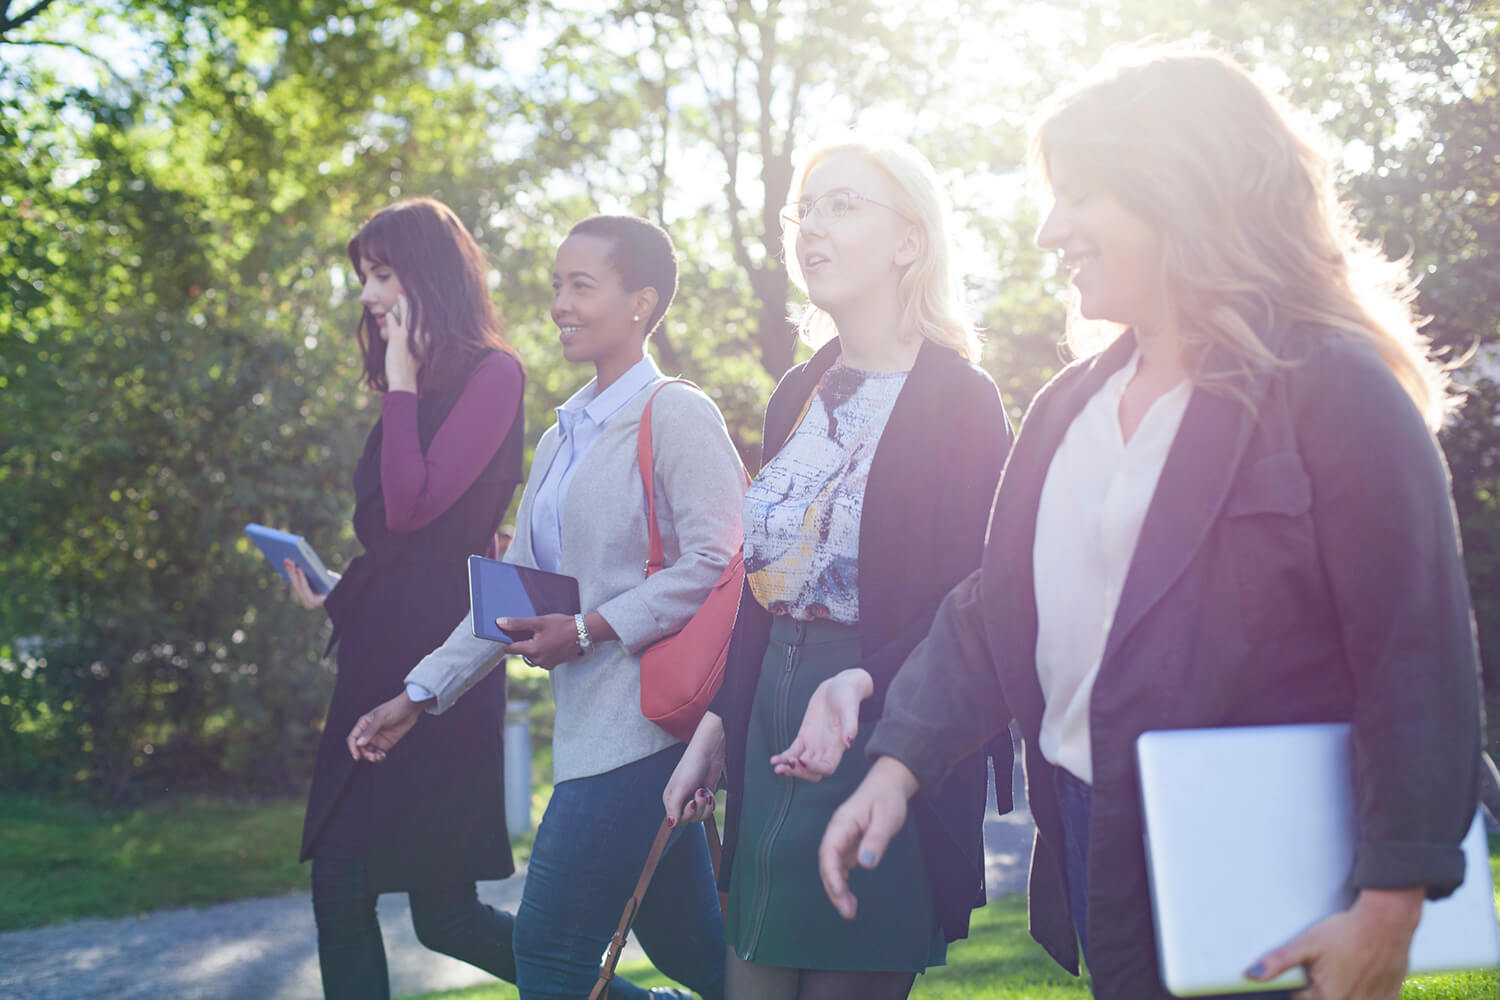 Group of female tech students walking outdoors